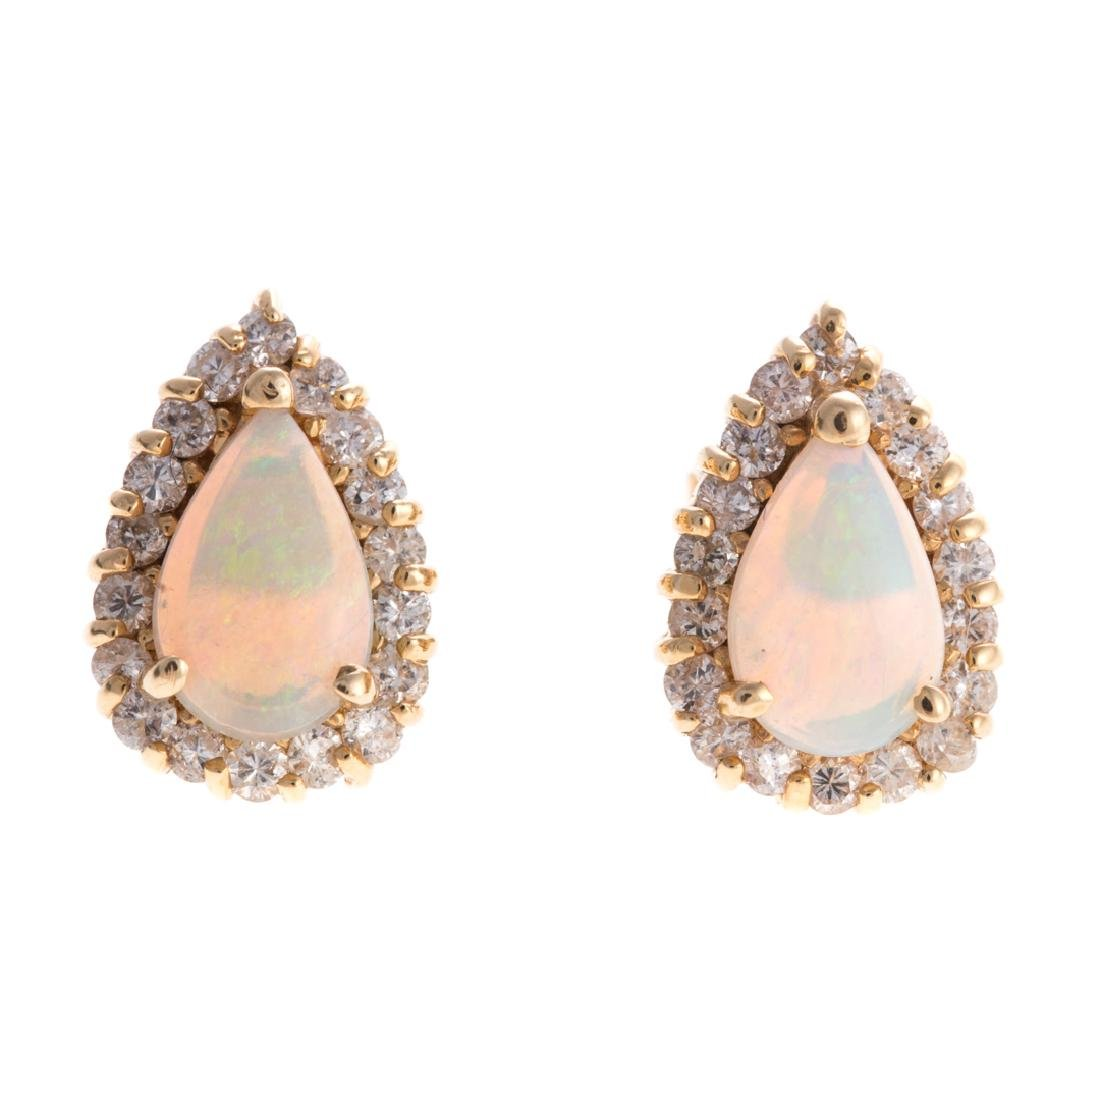 A Pair of Lady's Opal and Diamond Earrings